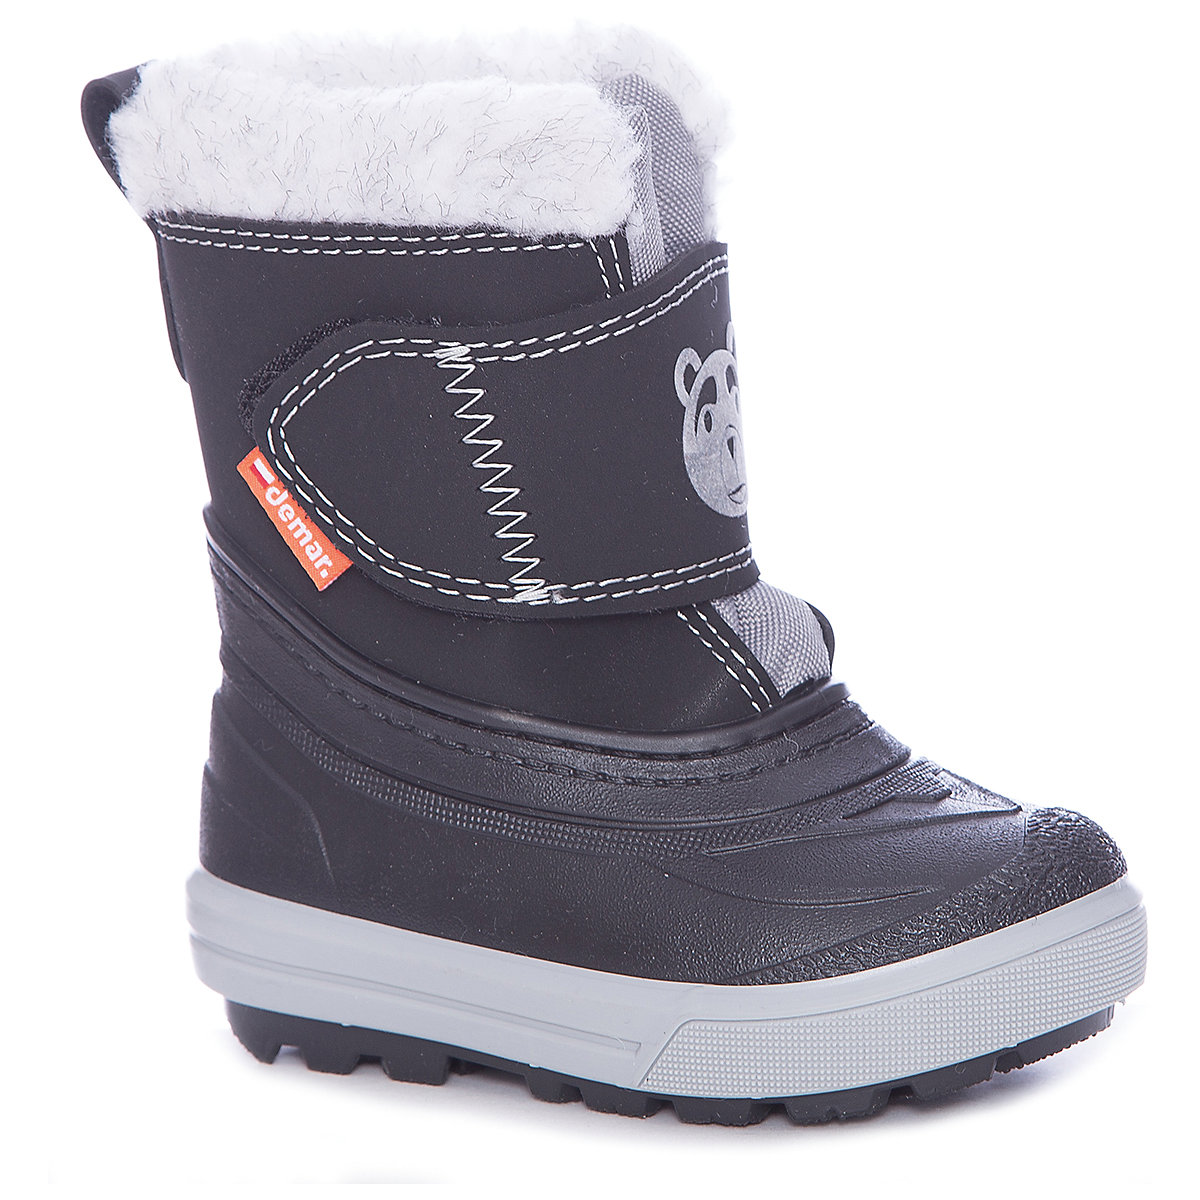 Boots Demar for boys and girls 7134870 Valenki Uggi Winter Baby Kids Children shoes boots lassie for boys 8622225 valenki uggi winter shoes children kids